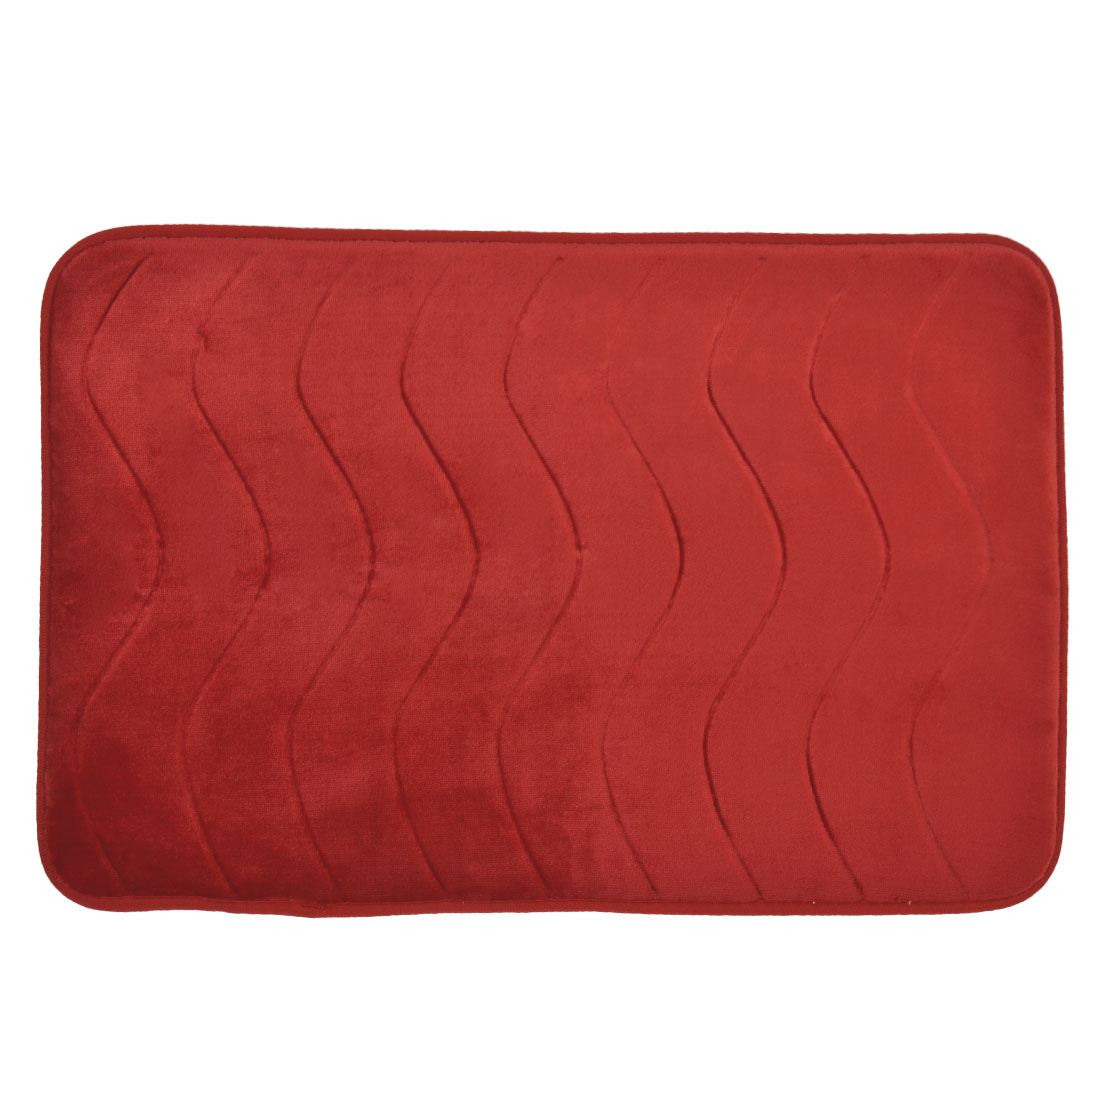 58cm x 40cm Red Villus Surface Wavy Pattern Absorbent Non-slip Pad Shower Rug